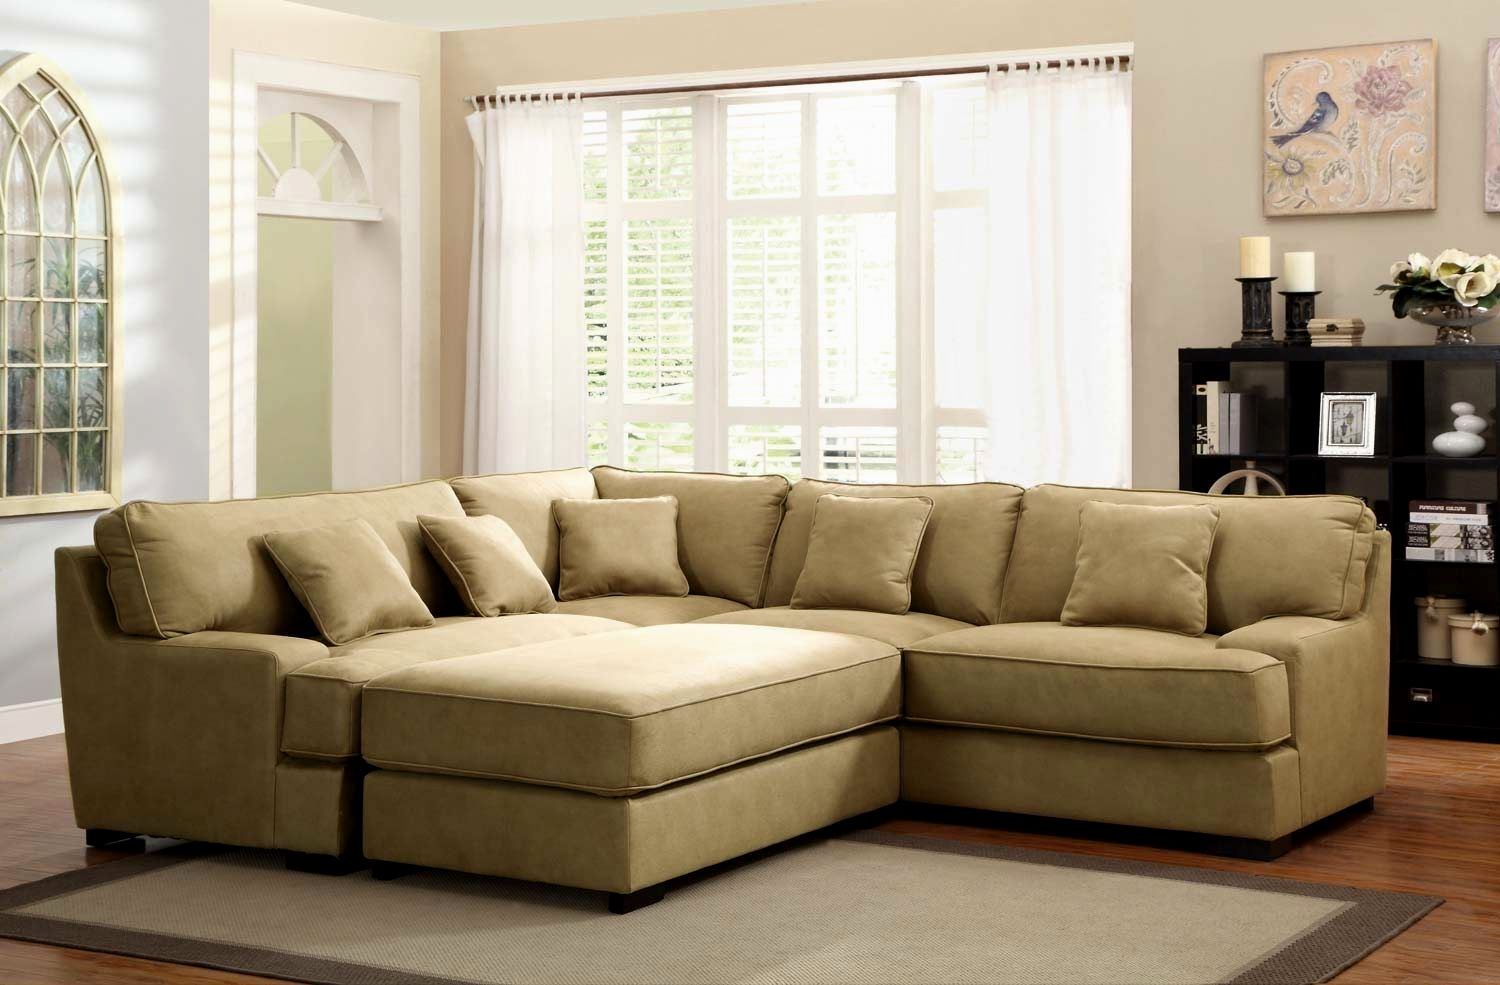 lovely sectional sofas houston picture-Fresh Sectional sofas Houston Concept